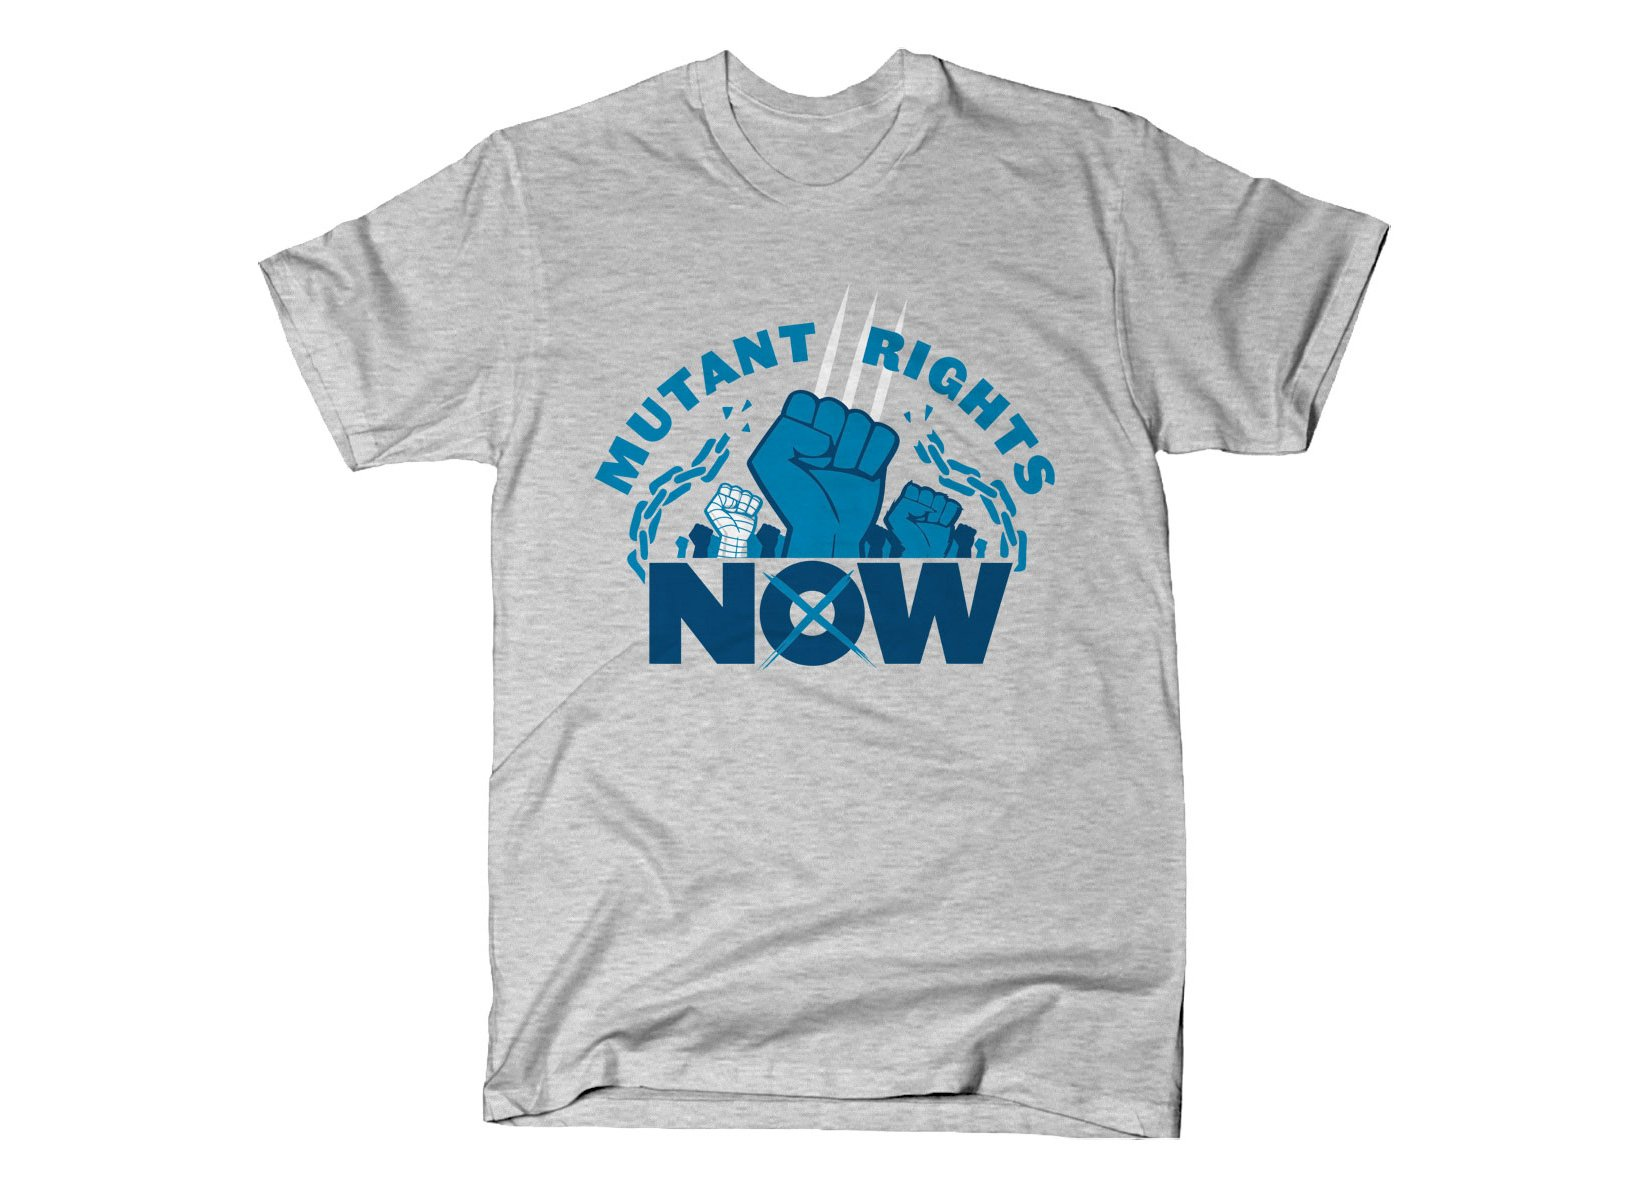 Mutant Rights Now! on Mens T-Shirt